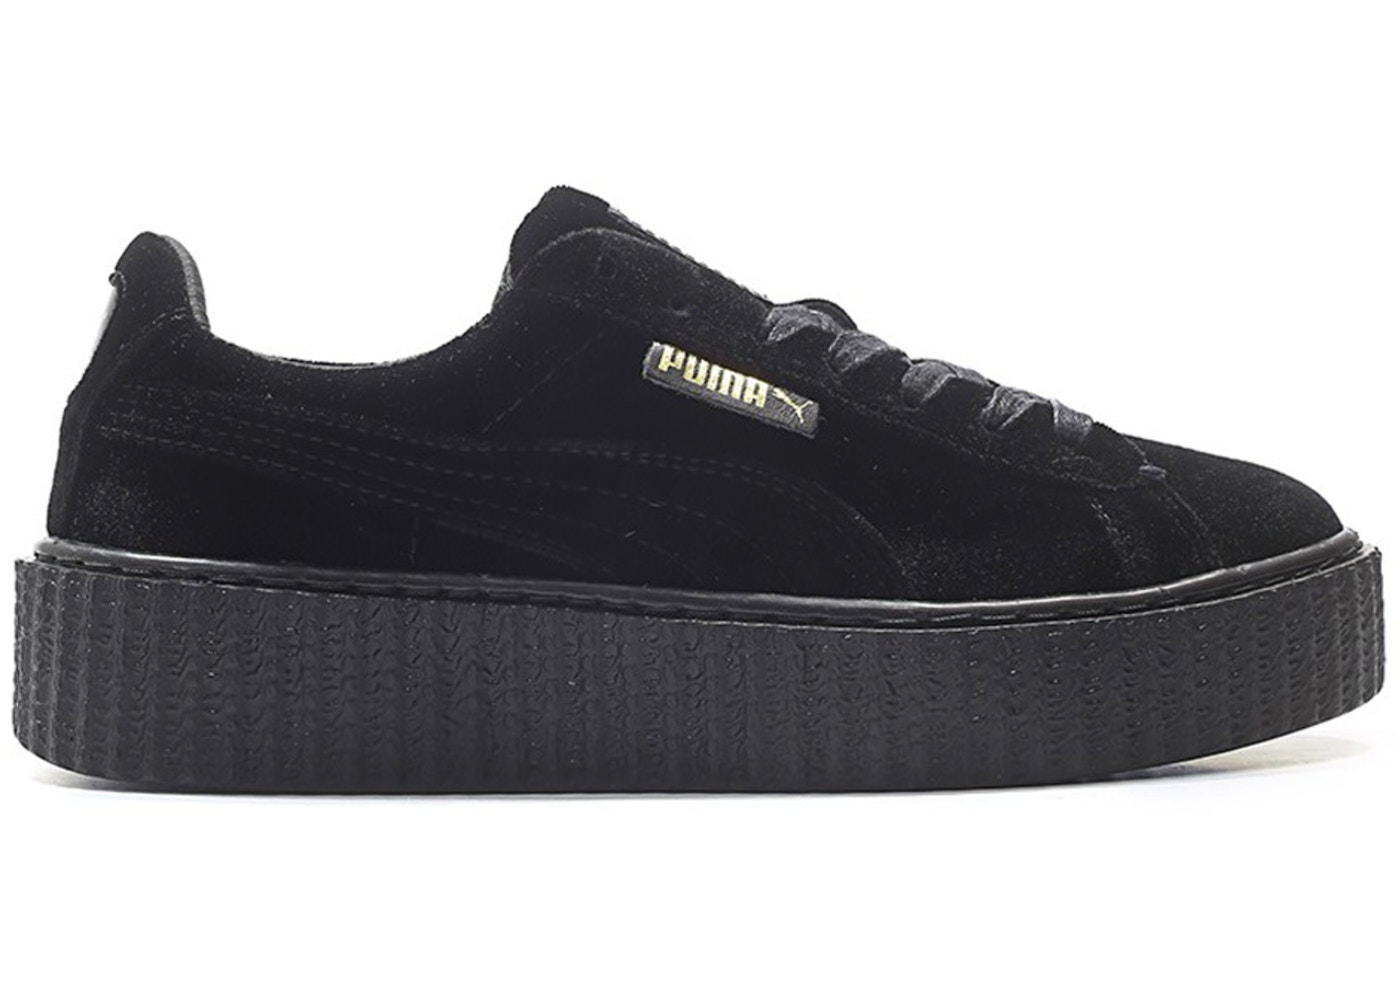 cheap for discount e4e40 567a6 stockx.imgix.net/Puma-Creeper-Velvet-Rihanna-Fenty...